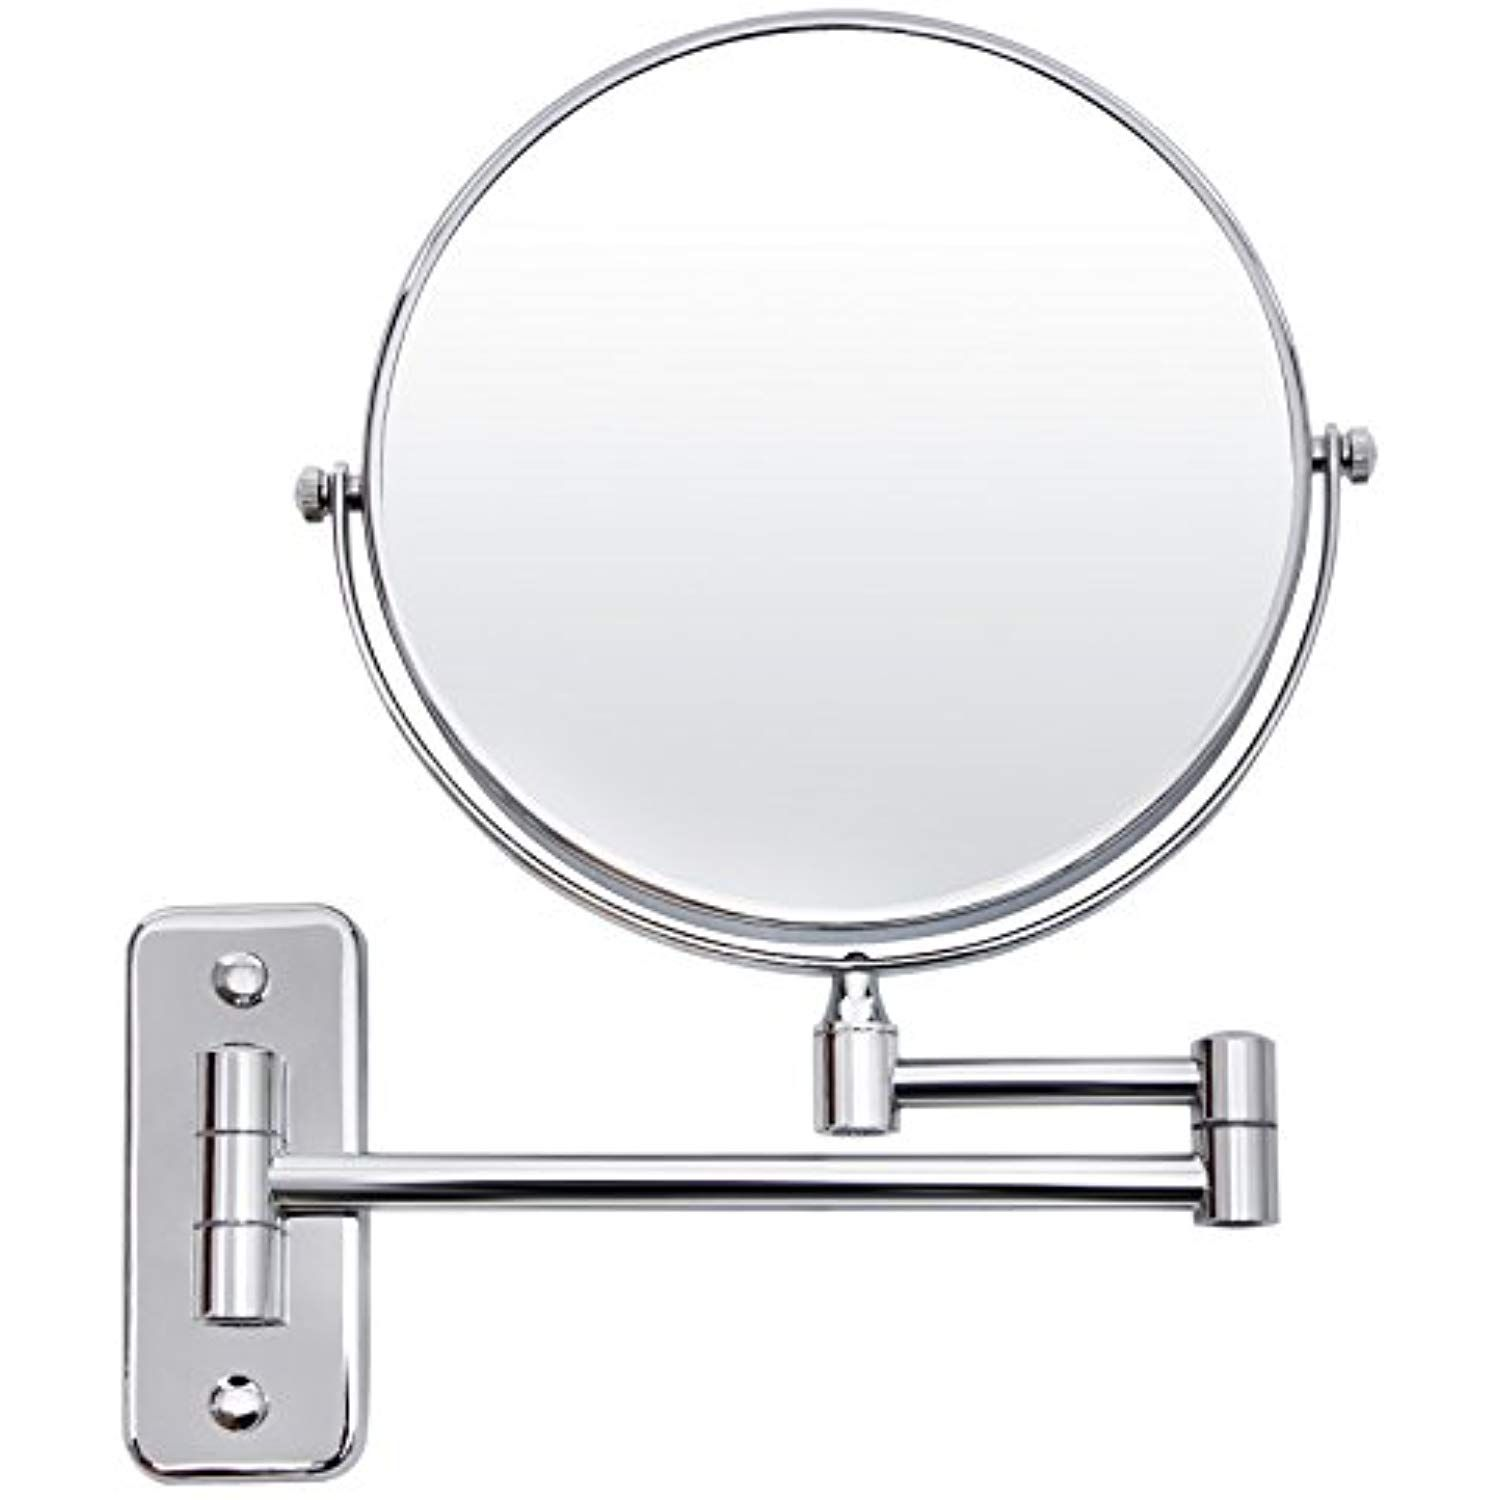 Songmics 8 Two Sided Wall Mount Makeup Mirror 360a Swivel Extendable 7x Cosmetic Mirro Wall Mounted Makeup Mirror Bathroom Vanity Mirror Lighted Wall Mirror